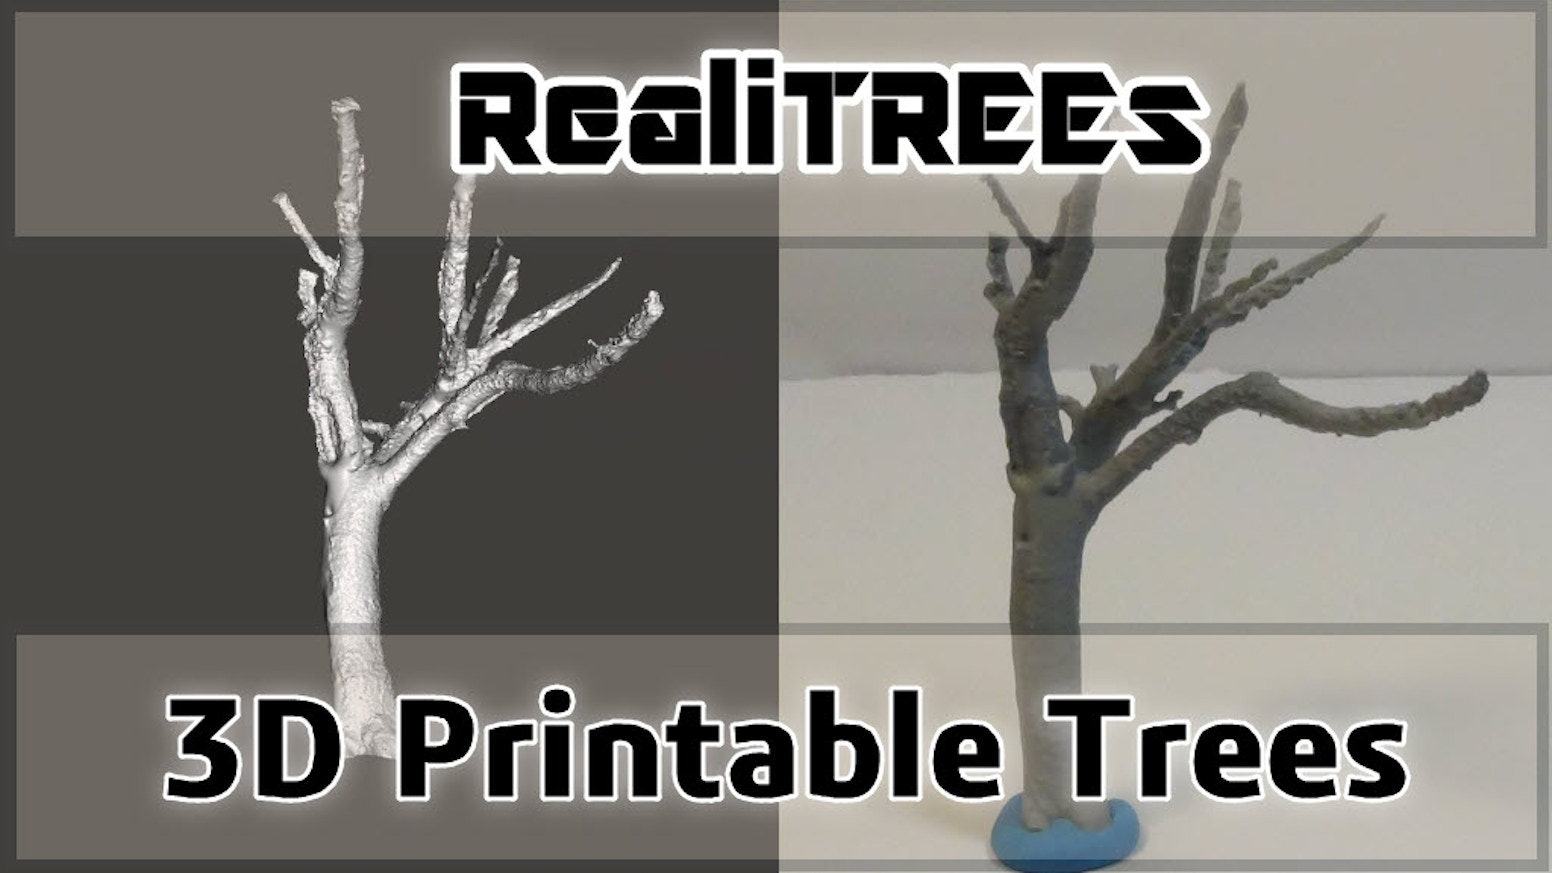 Intricate tree armatures based on reality for all your miniature needs. 3D printable files to test your printer and awe your friends. Now available on Gumroad! (Check Link)